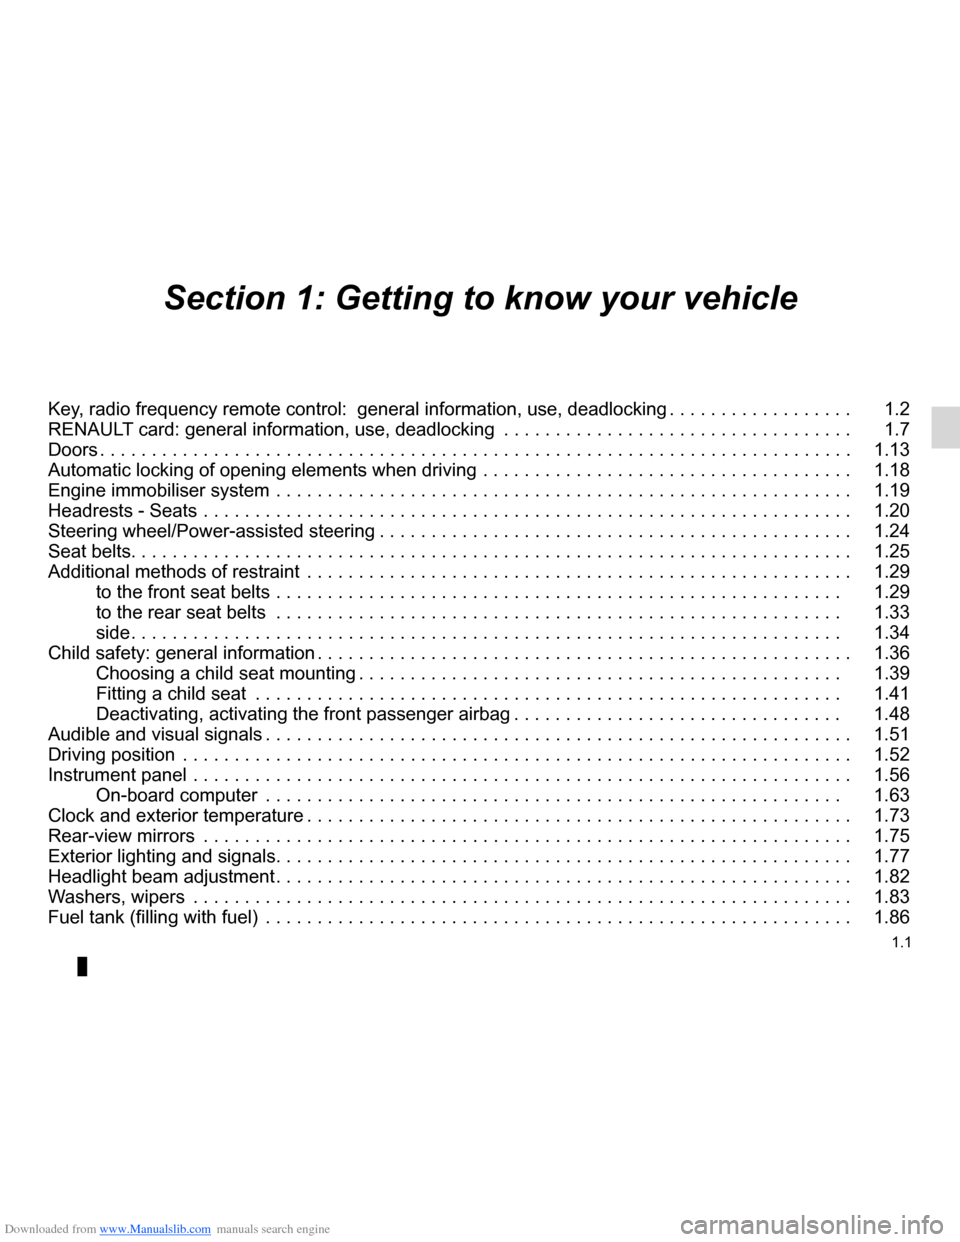 RENAULT CLIO 2012 X85 / 3.G Owners Manual, Page 7